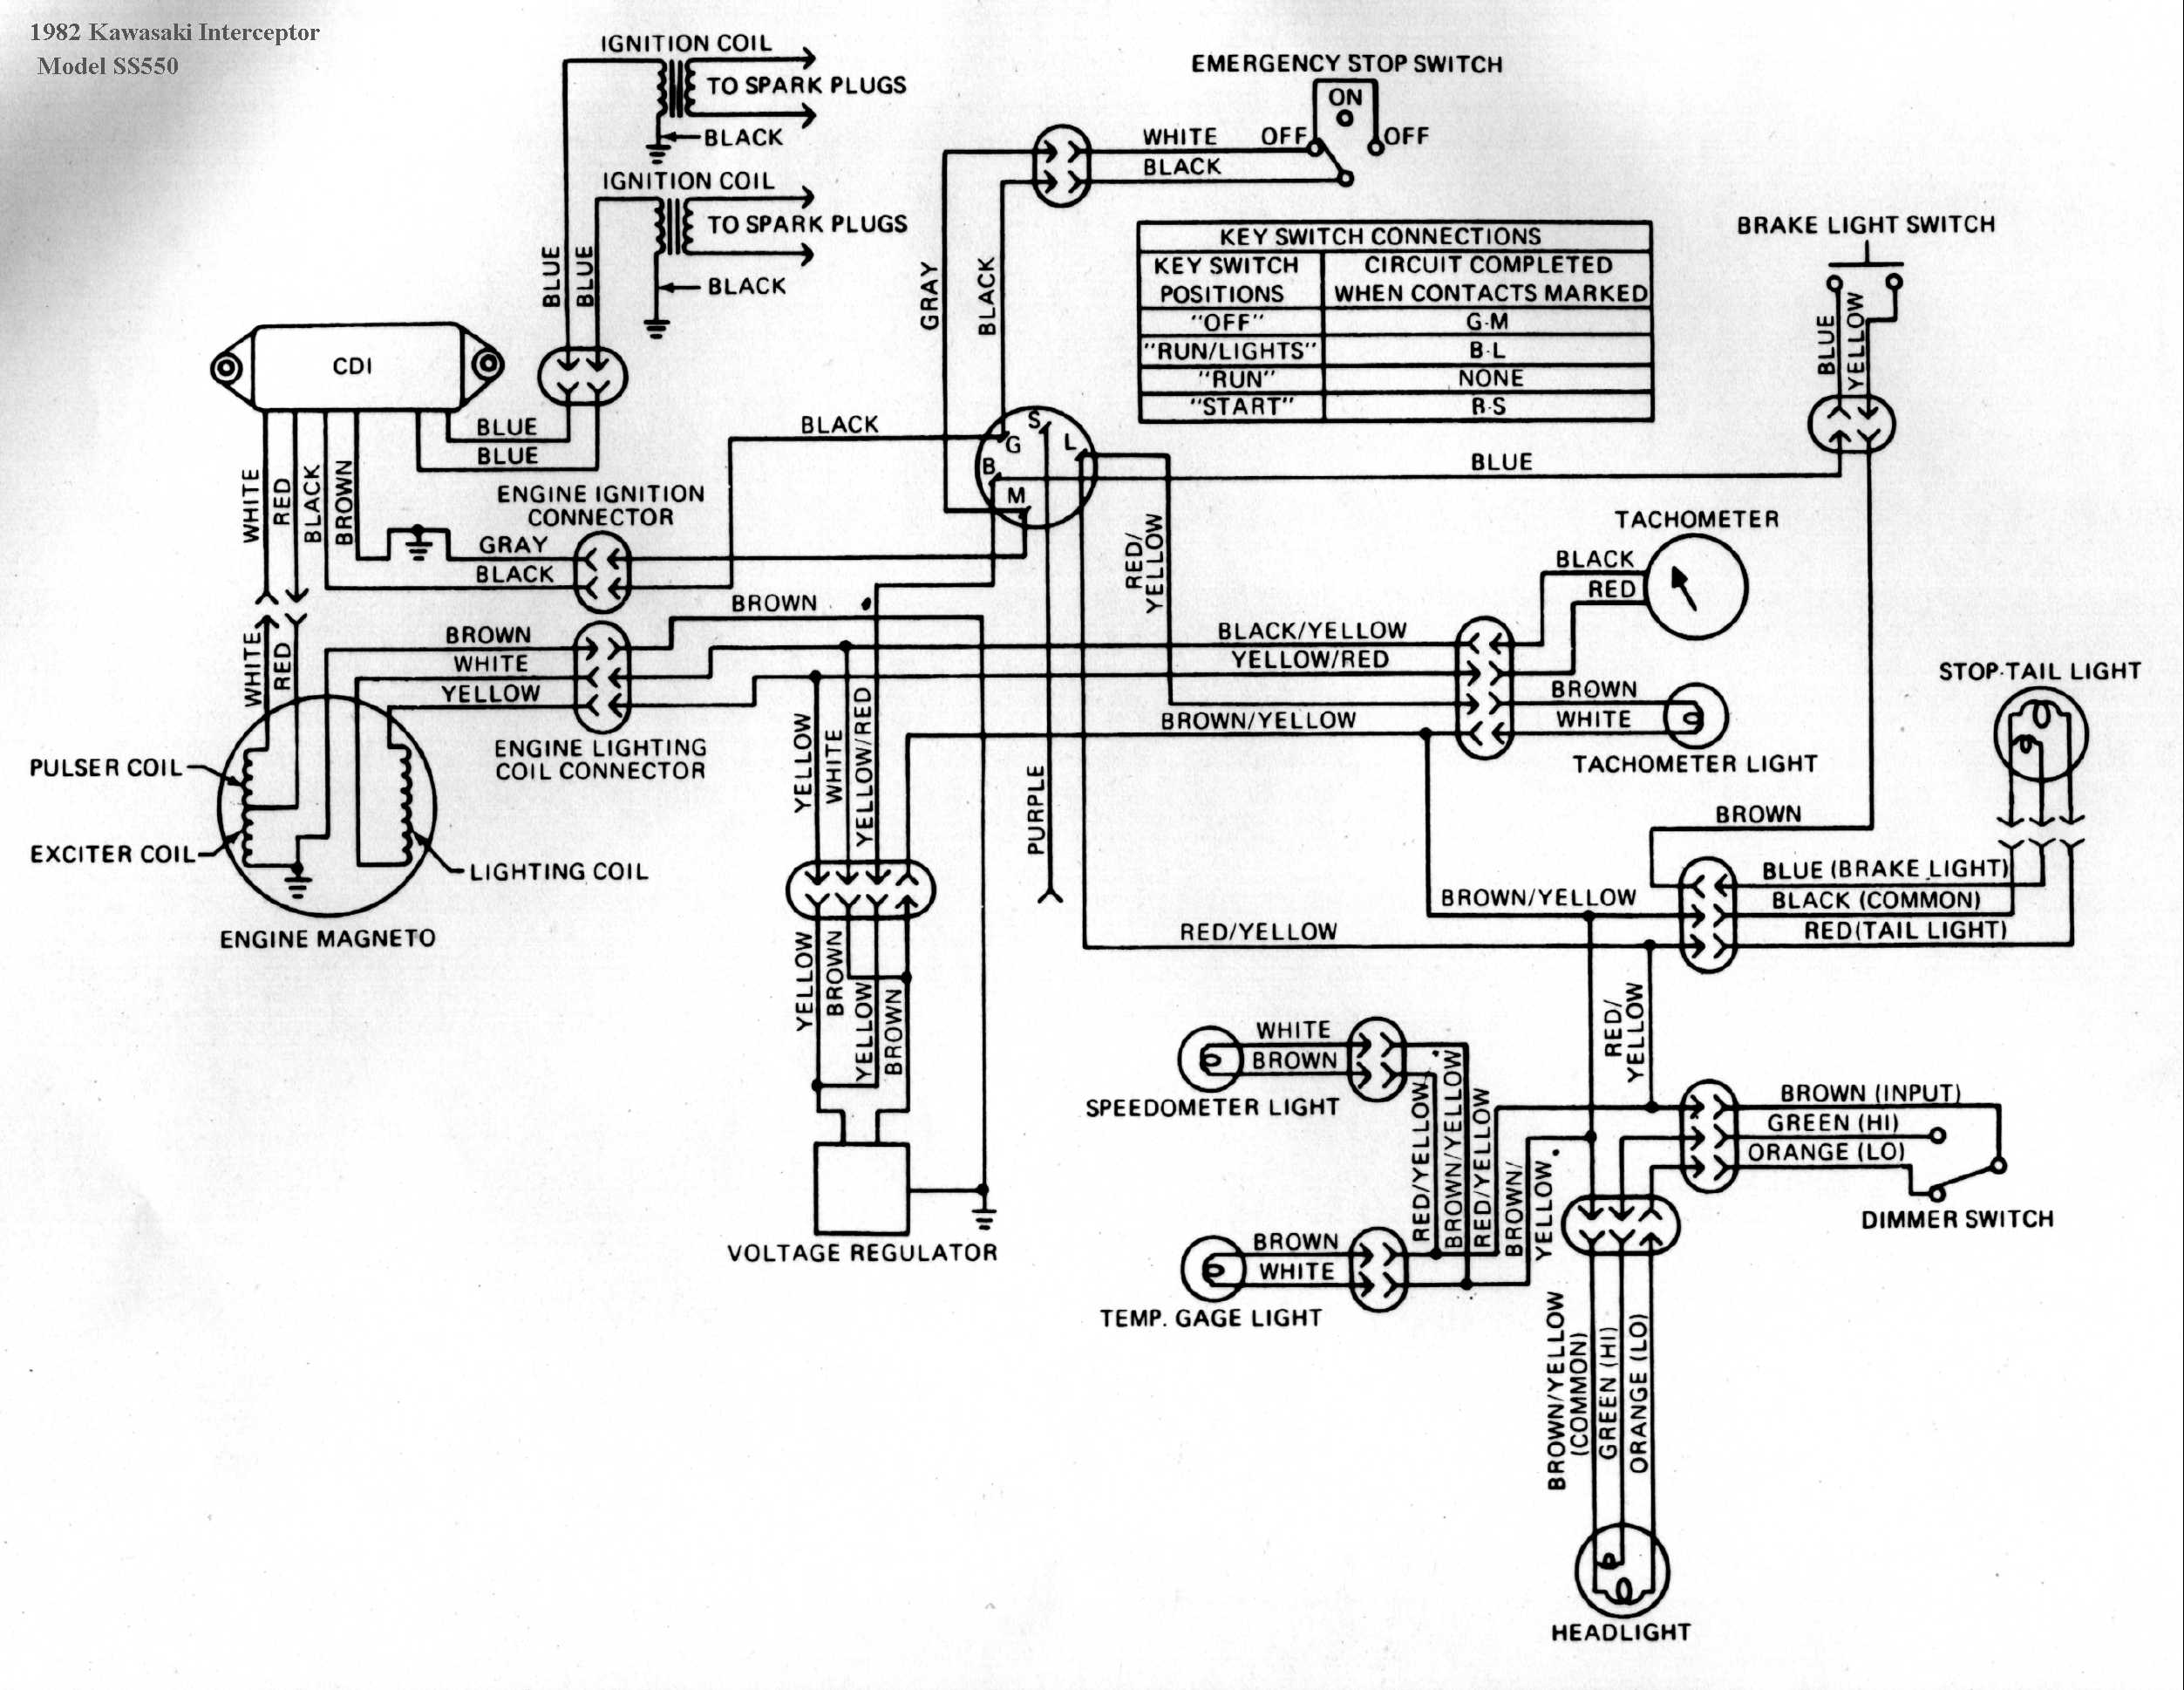 Kawasaki Bayou Wiring Harness | Wiring Diagram on bayou 220 lights, bayou 220 exhaust, bayou 220 starter, bayou 220 lift kit, bayou 220 frame, bayou wiring schematic, bayou 300 parts diagram, bayou 220 accessories, bayou 220 motor, bayou 220 repair manual, bayou 220 transmission, bayou 220 clutch, bayou 220 relay, bayou 220 timing, bayou 300 4x4 wiring, bayou 220 flywheel, kawasaki bayou 220 electrical diagram, bayou 220 battery, klf 220 carb diagram, kawasaki bayou 220 parts diagram,